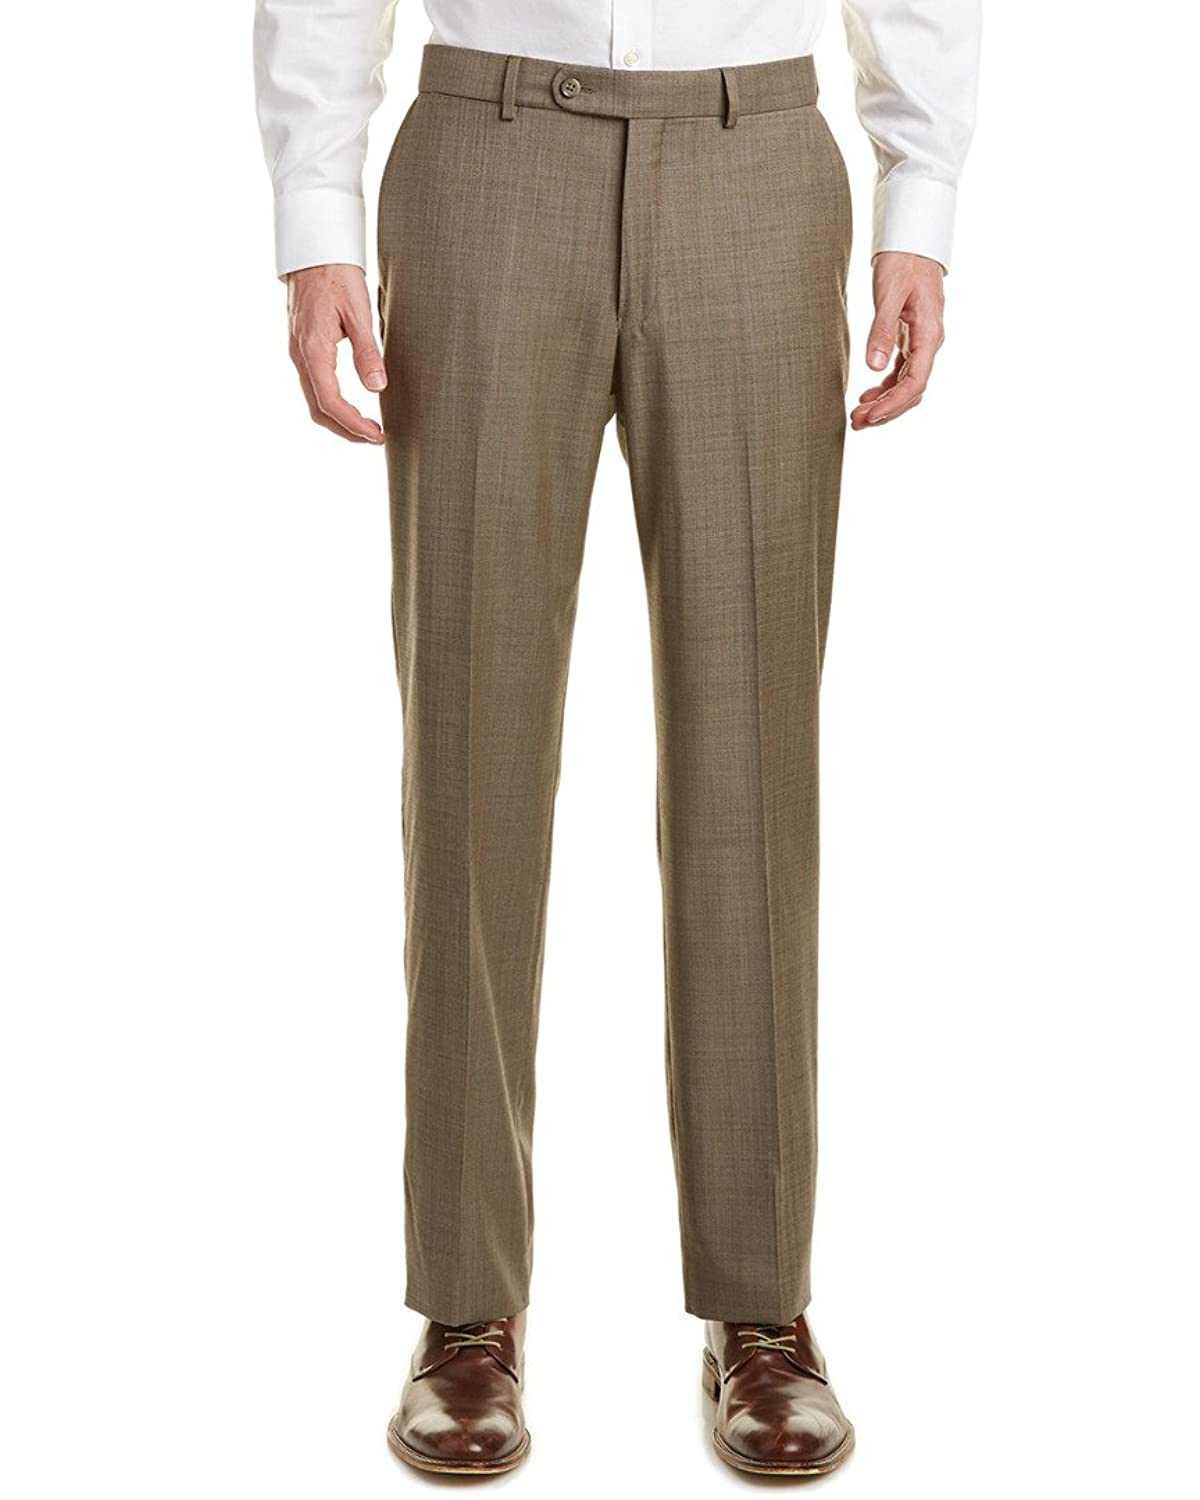 6 East Mens 6 East Park Avenue Wool Pant